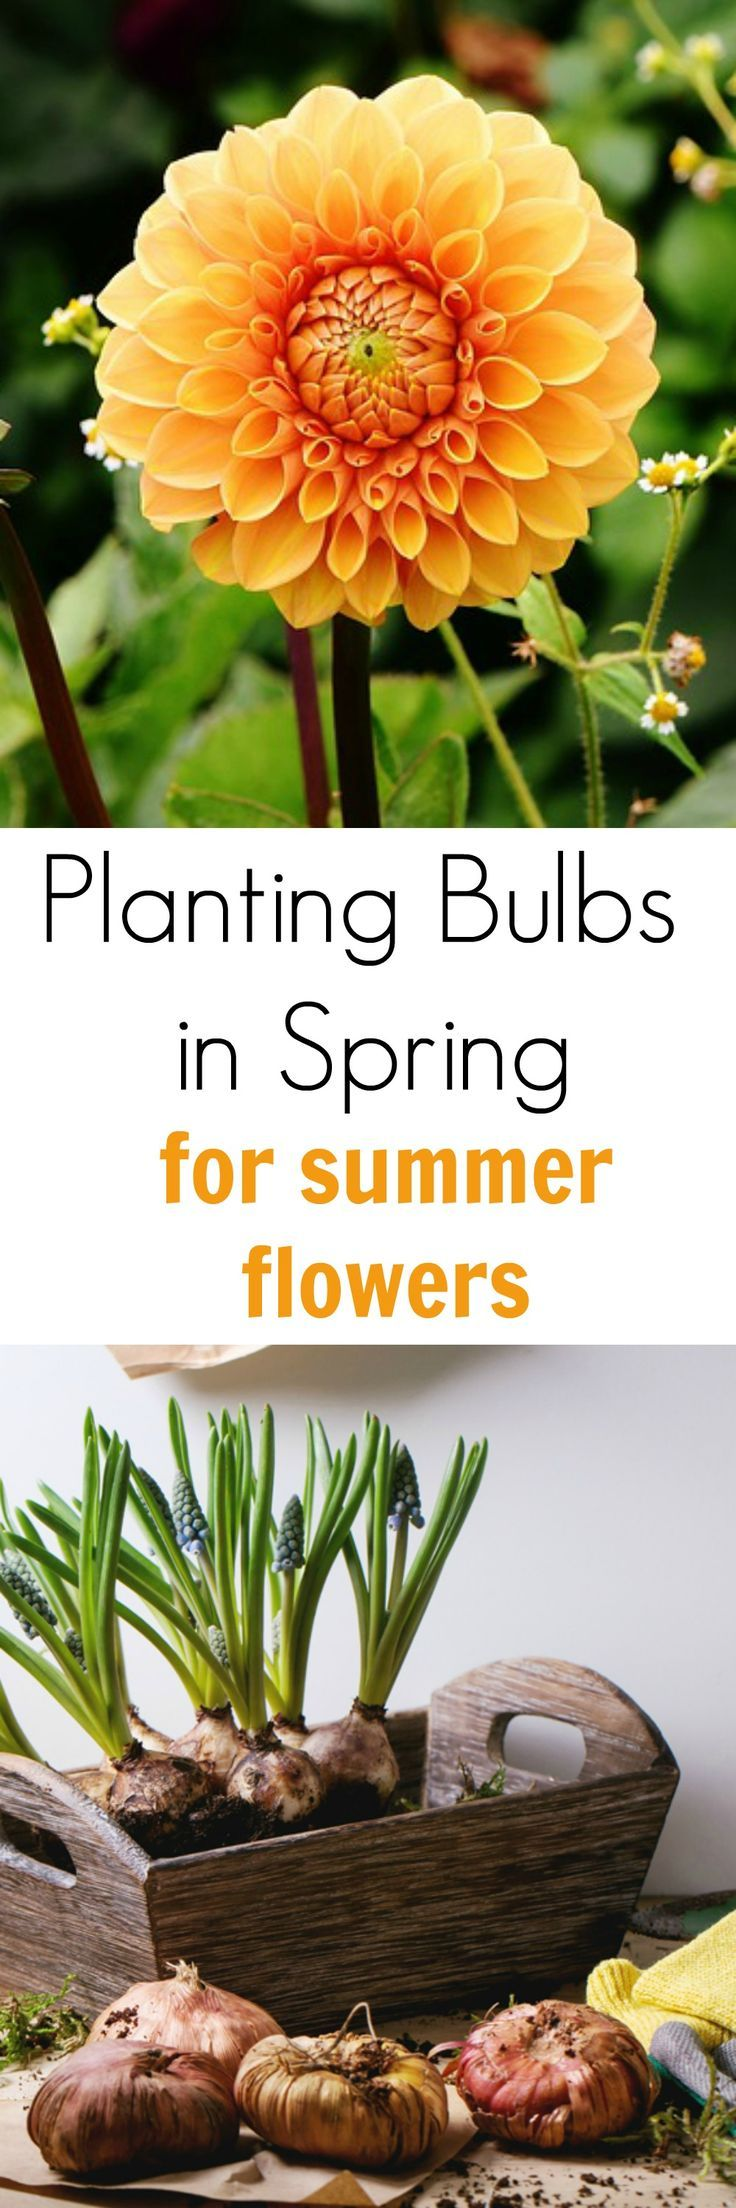 Planting Bulbs In Spring For Summer Flowers Bulbs Plants And Flower